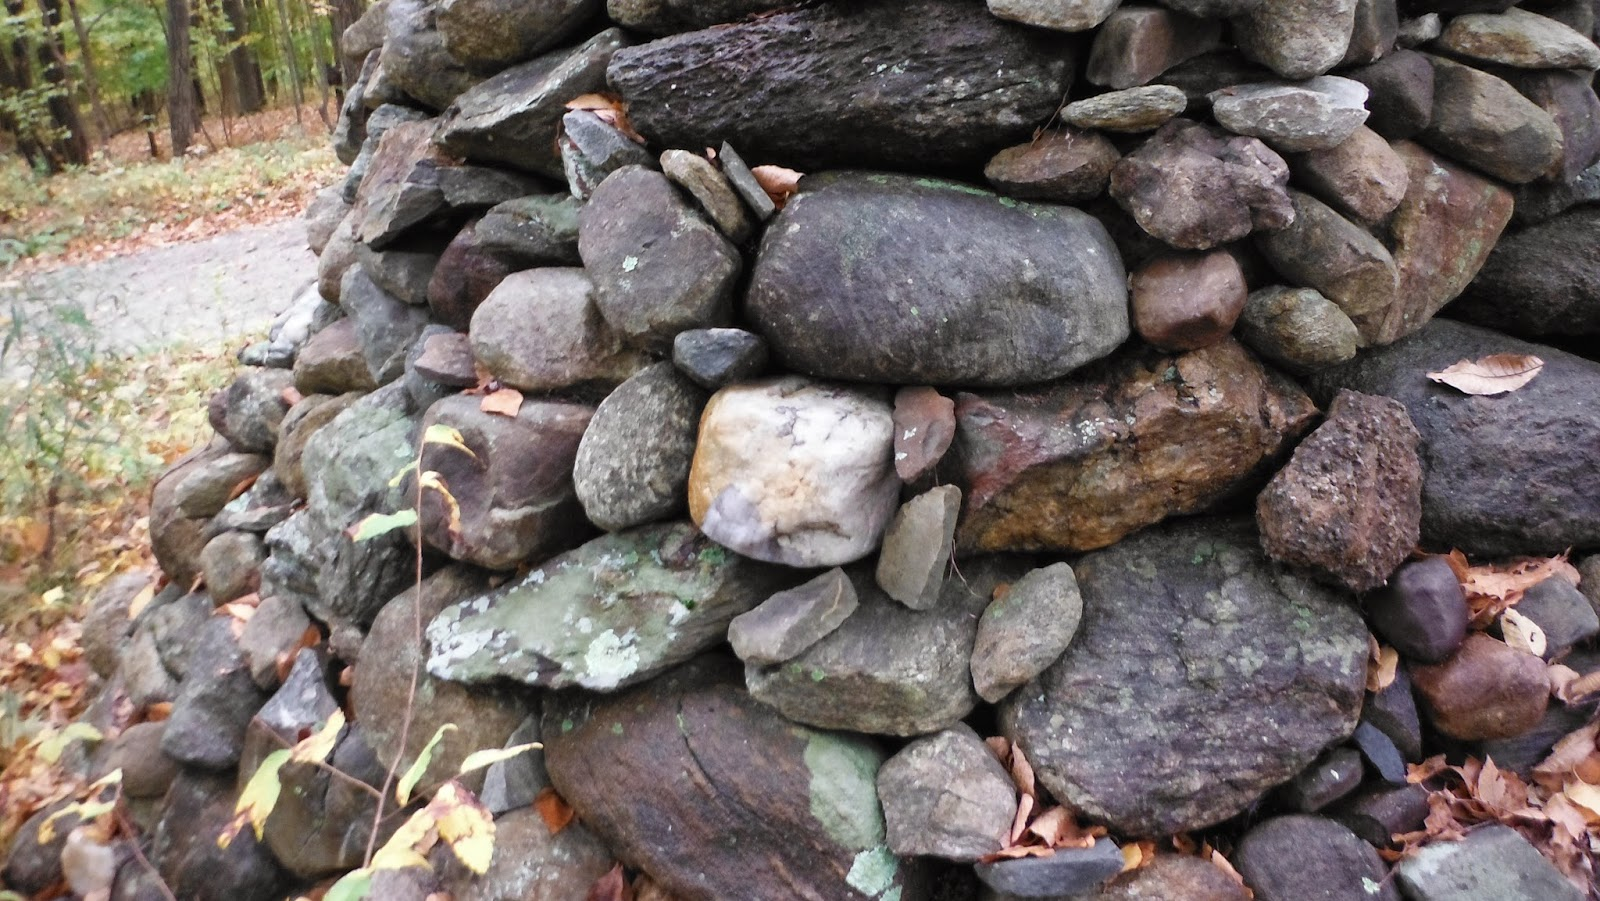 Rock Piles: Modern Stone Pile with Hollow